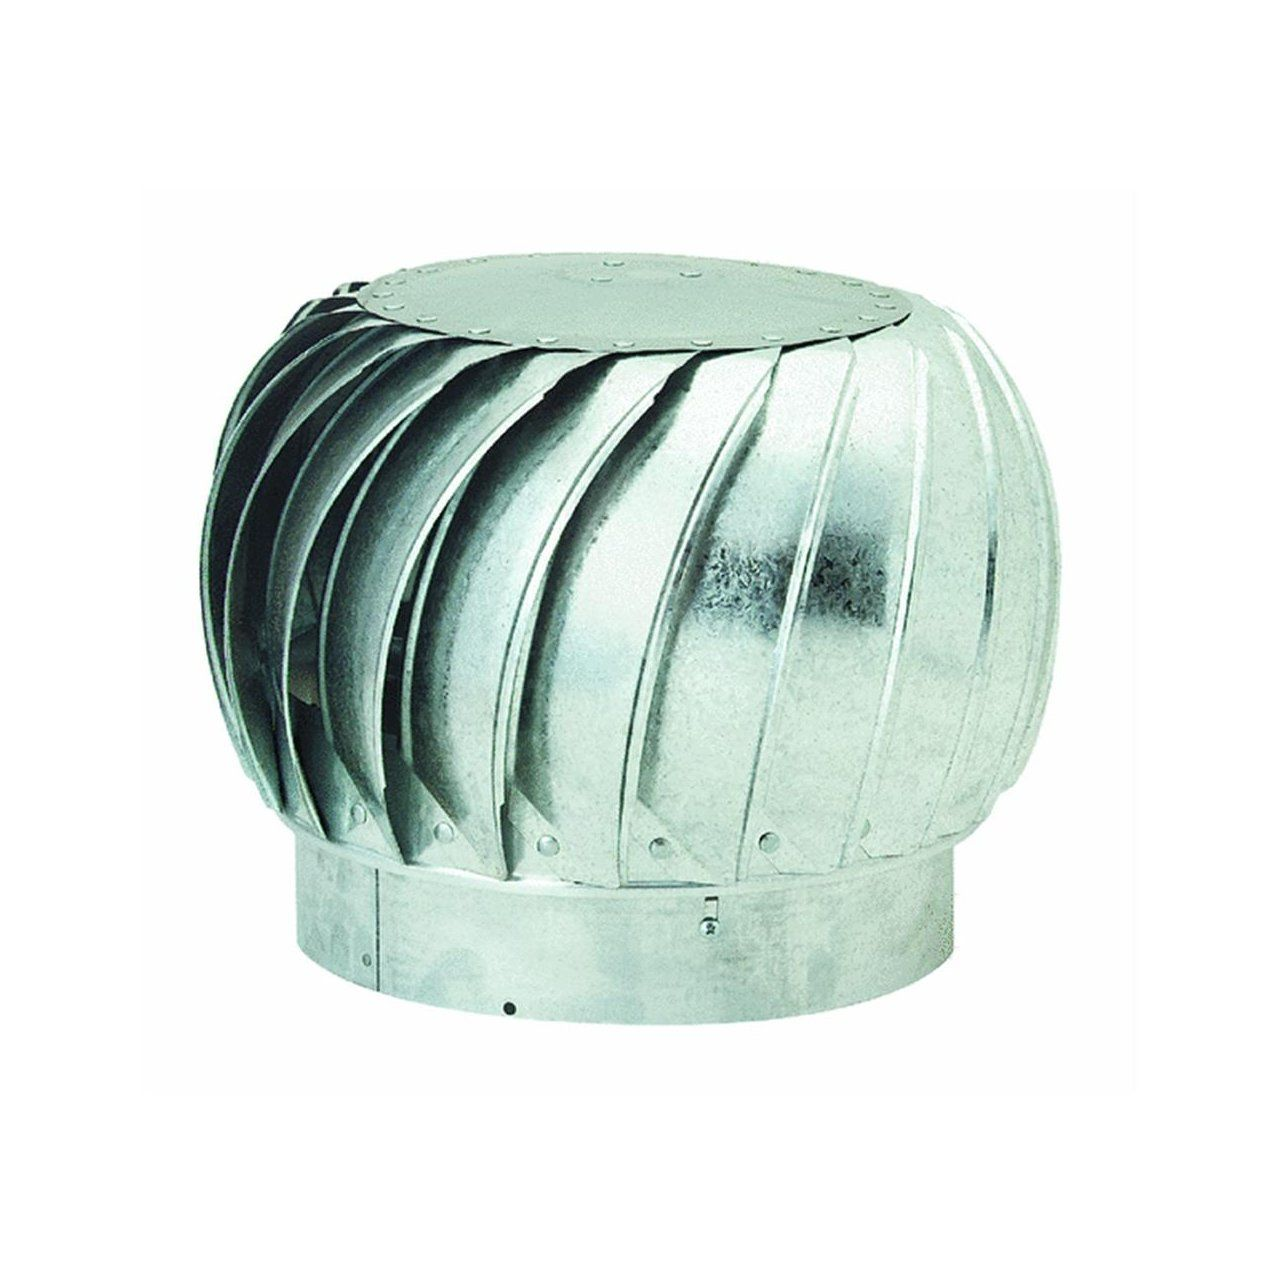 Ventamatic Cx12ibgvtmil Wind Turbine Attic Ventilator Click On The Image For Additional Details Wind Turbine Turbine Wind